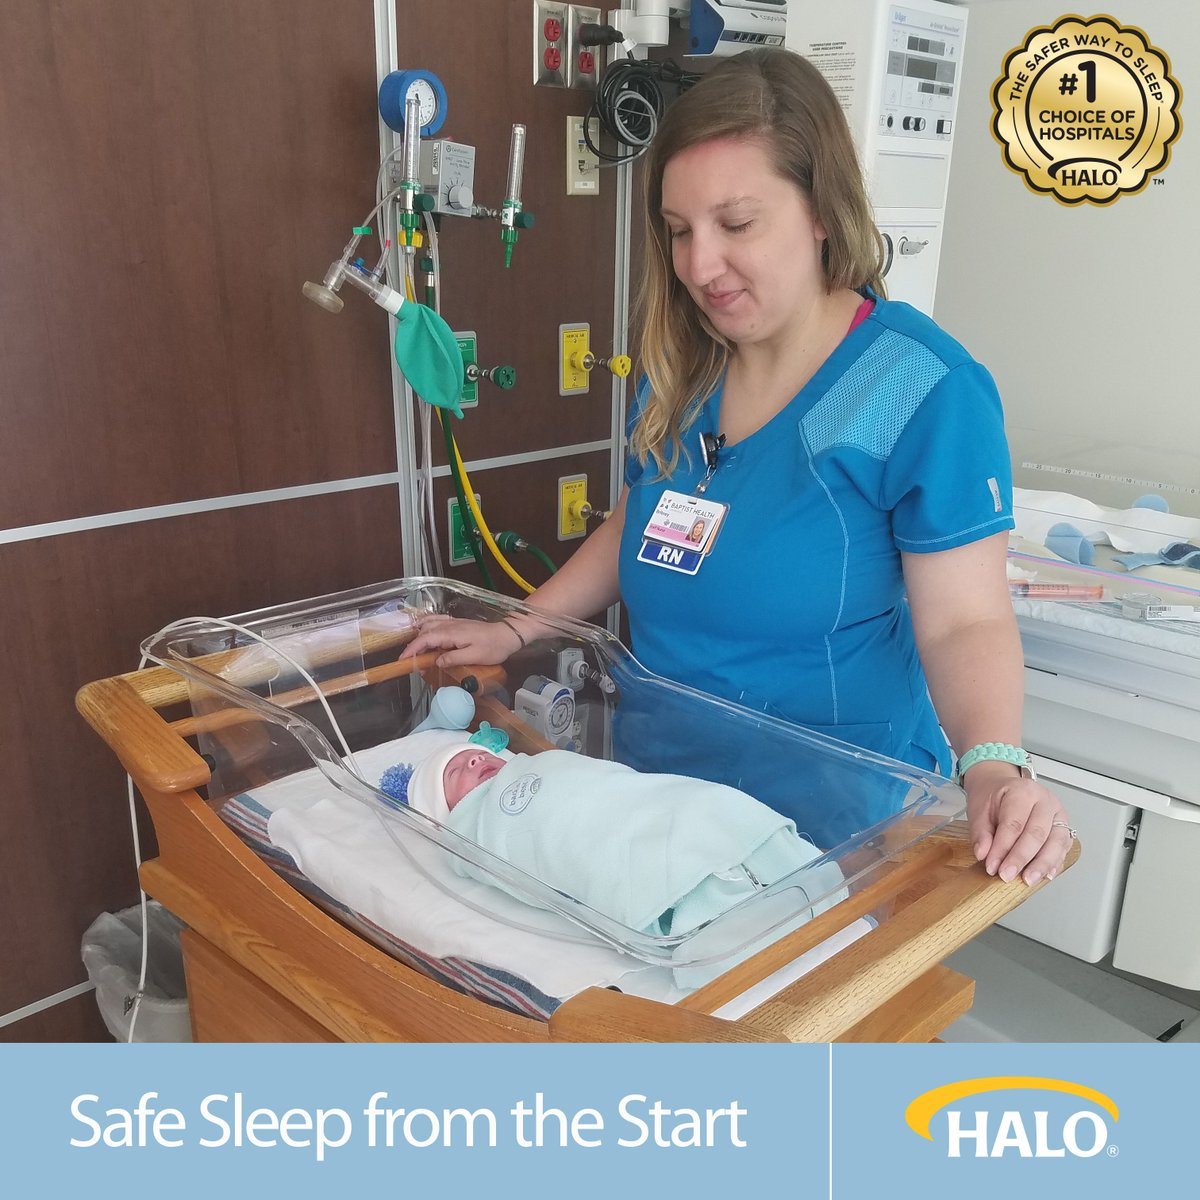 Over 1,400 hospitals use the #HALOSleepSack. The safest way for baby to sleep from the start https://t.co/cbQDHfyu2o https://t.co/0x4izCMO2f